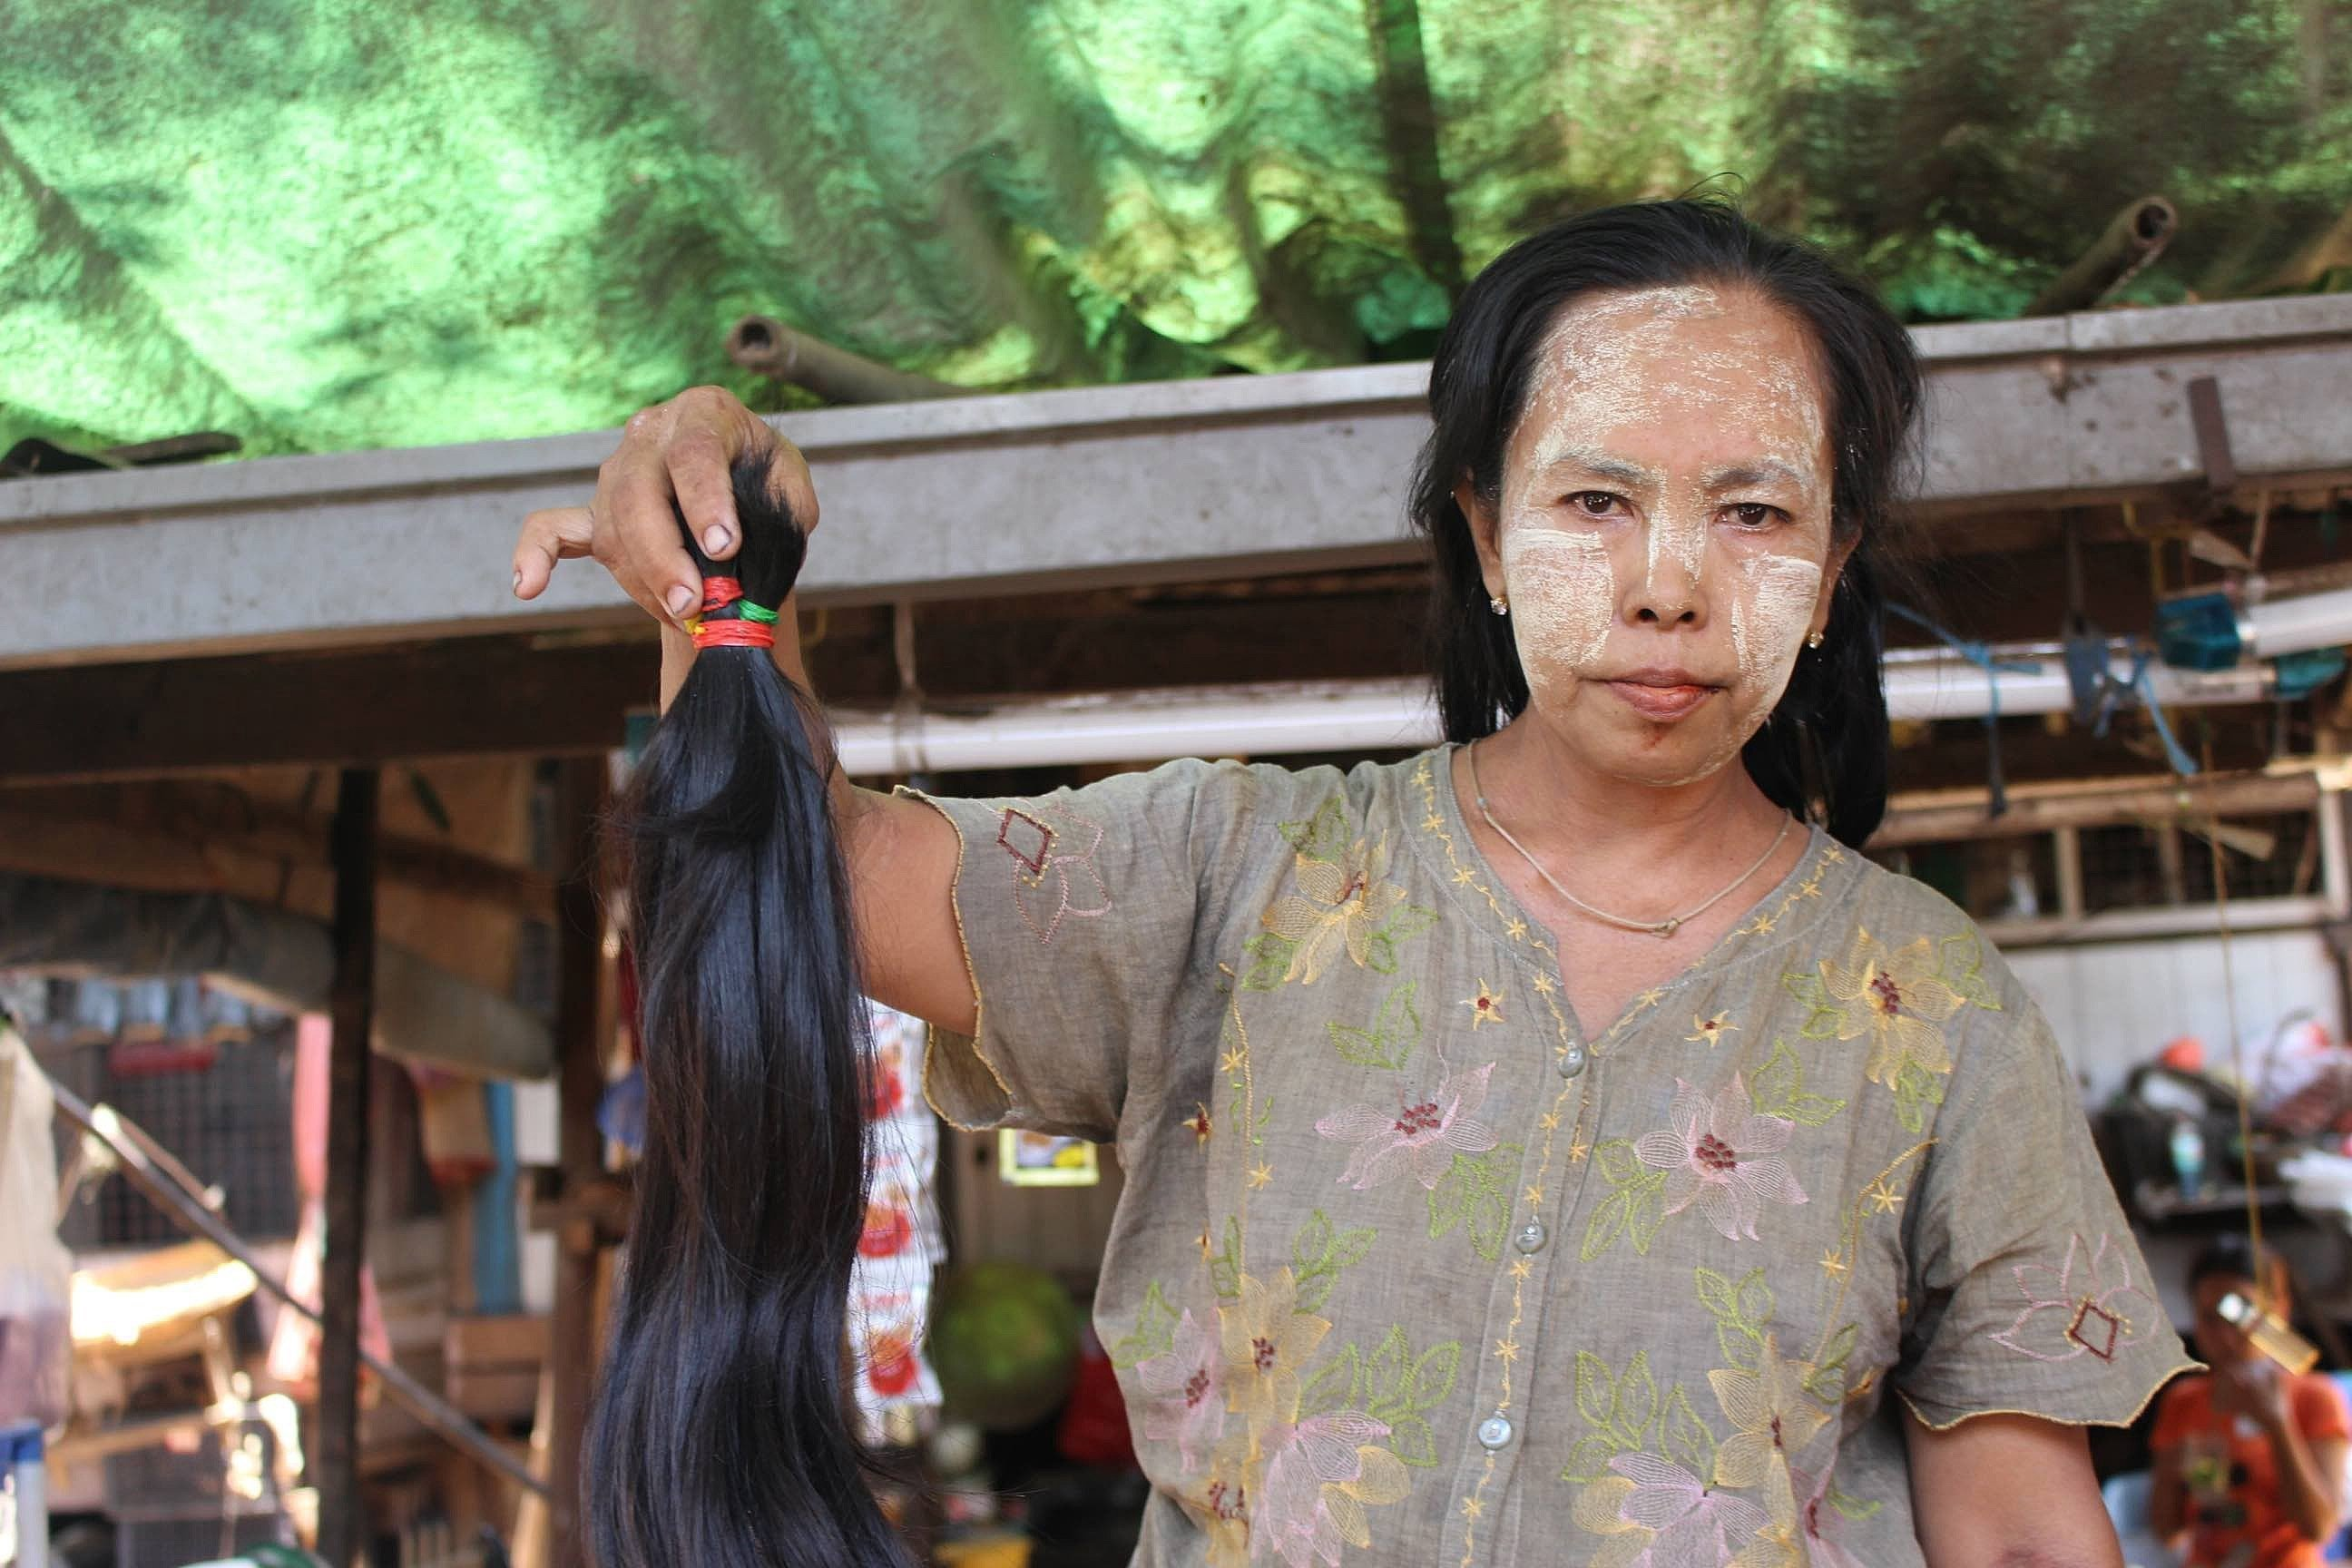 Aye Aye Thein, 55, cuts hair for a living at Insein market in the north of Yangon, Myanmar's largest city.